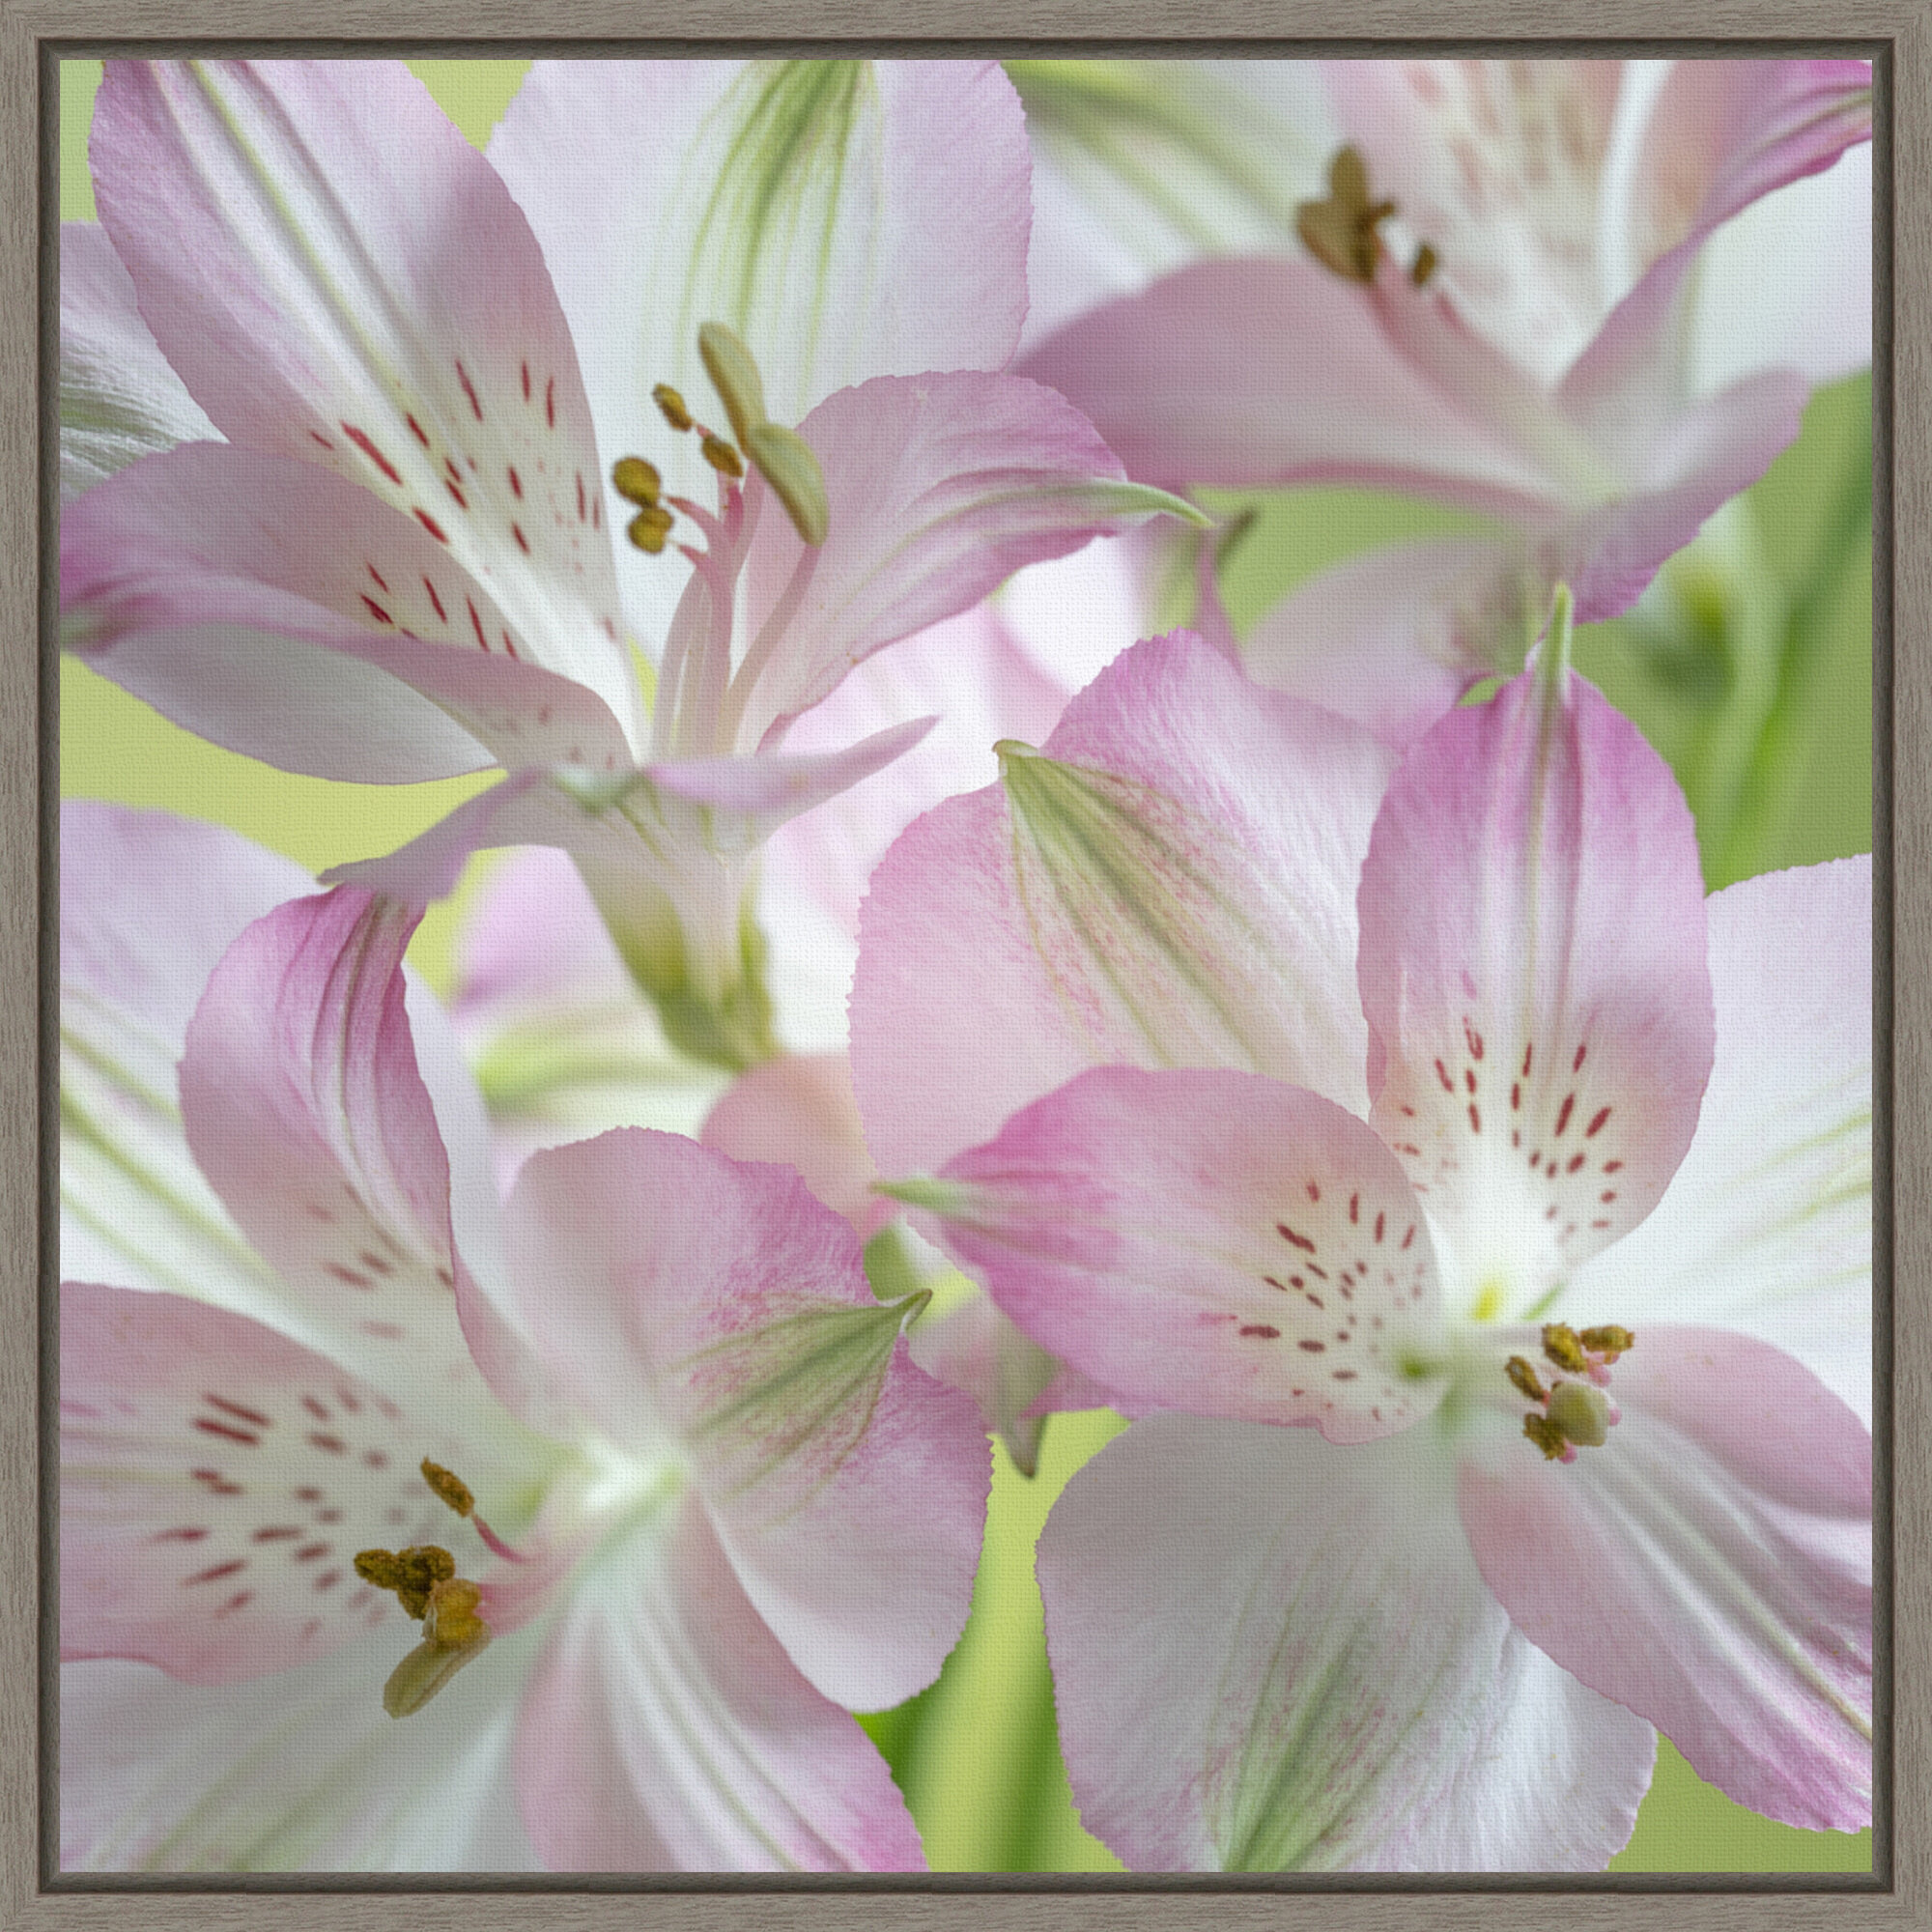 Red Barrel Studio Pink Alstroemeria Blossoms Close Up By Jaynes Gallery Danita Delimont Floater Frame Photograph Print On Canvas Wayfair